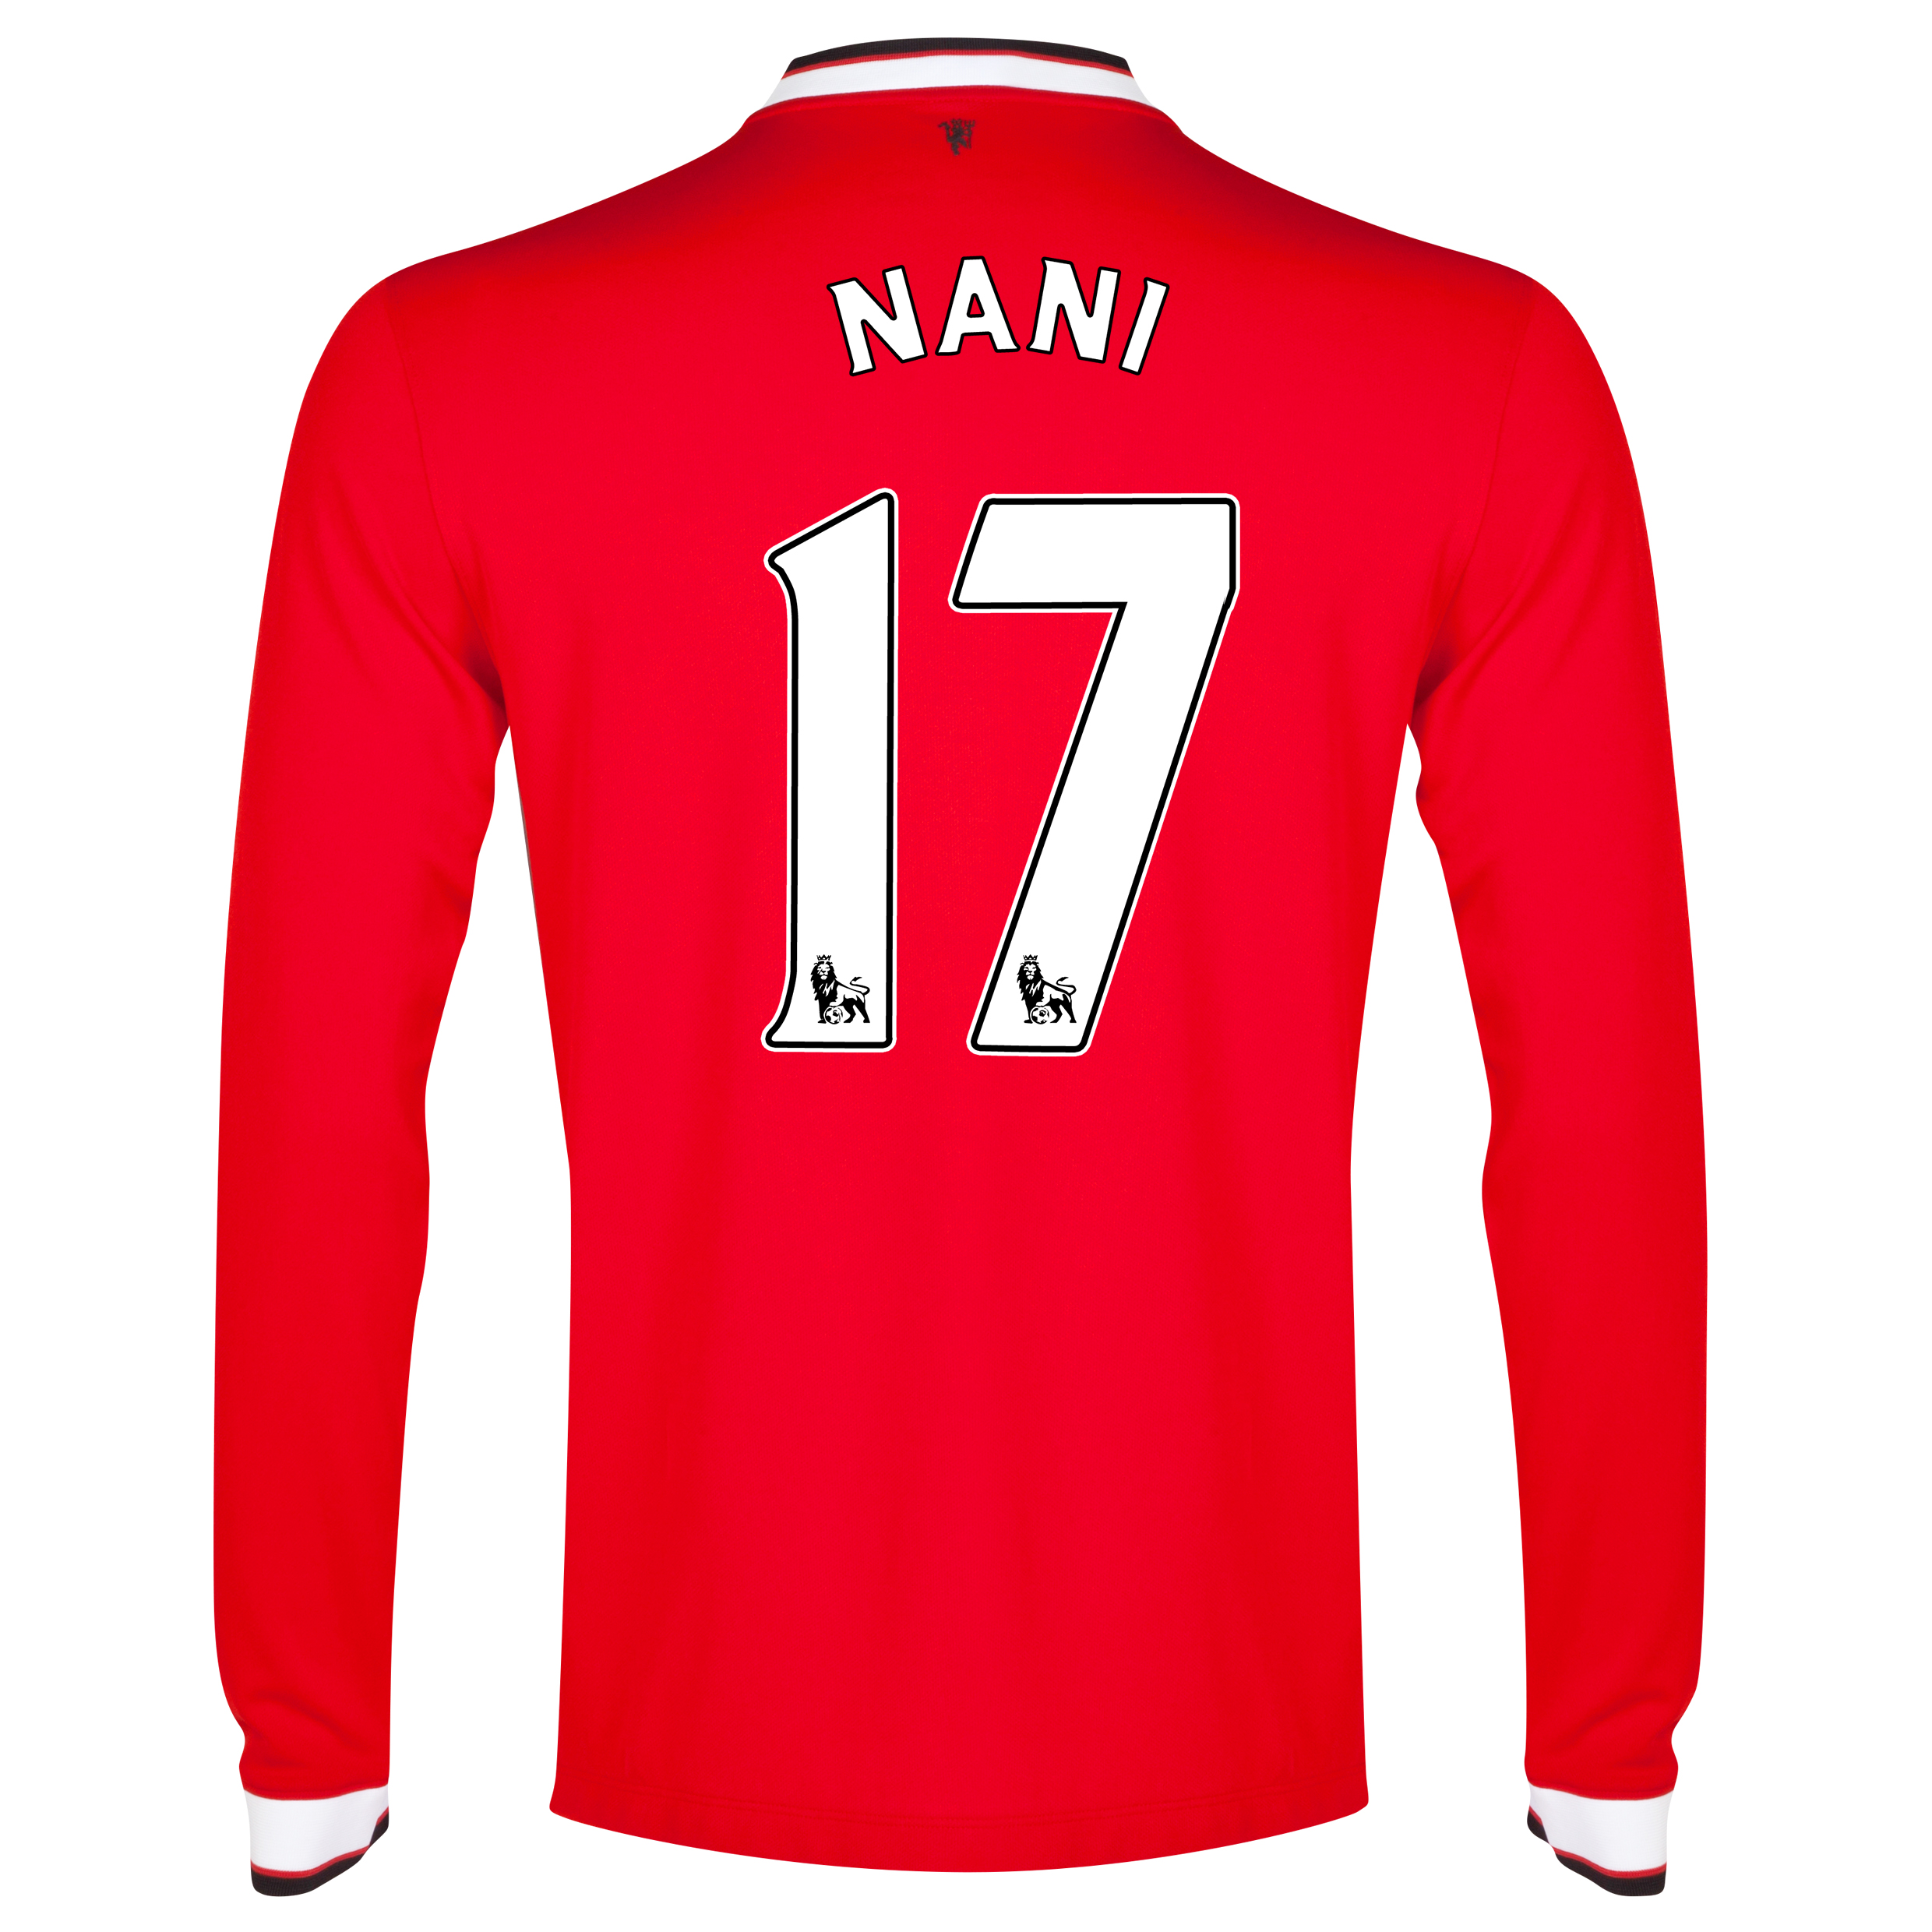 Manchester United Home Shirt 2014/15 - Long Sleeve Red with Nani 17 printing